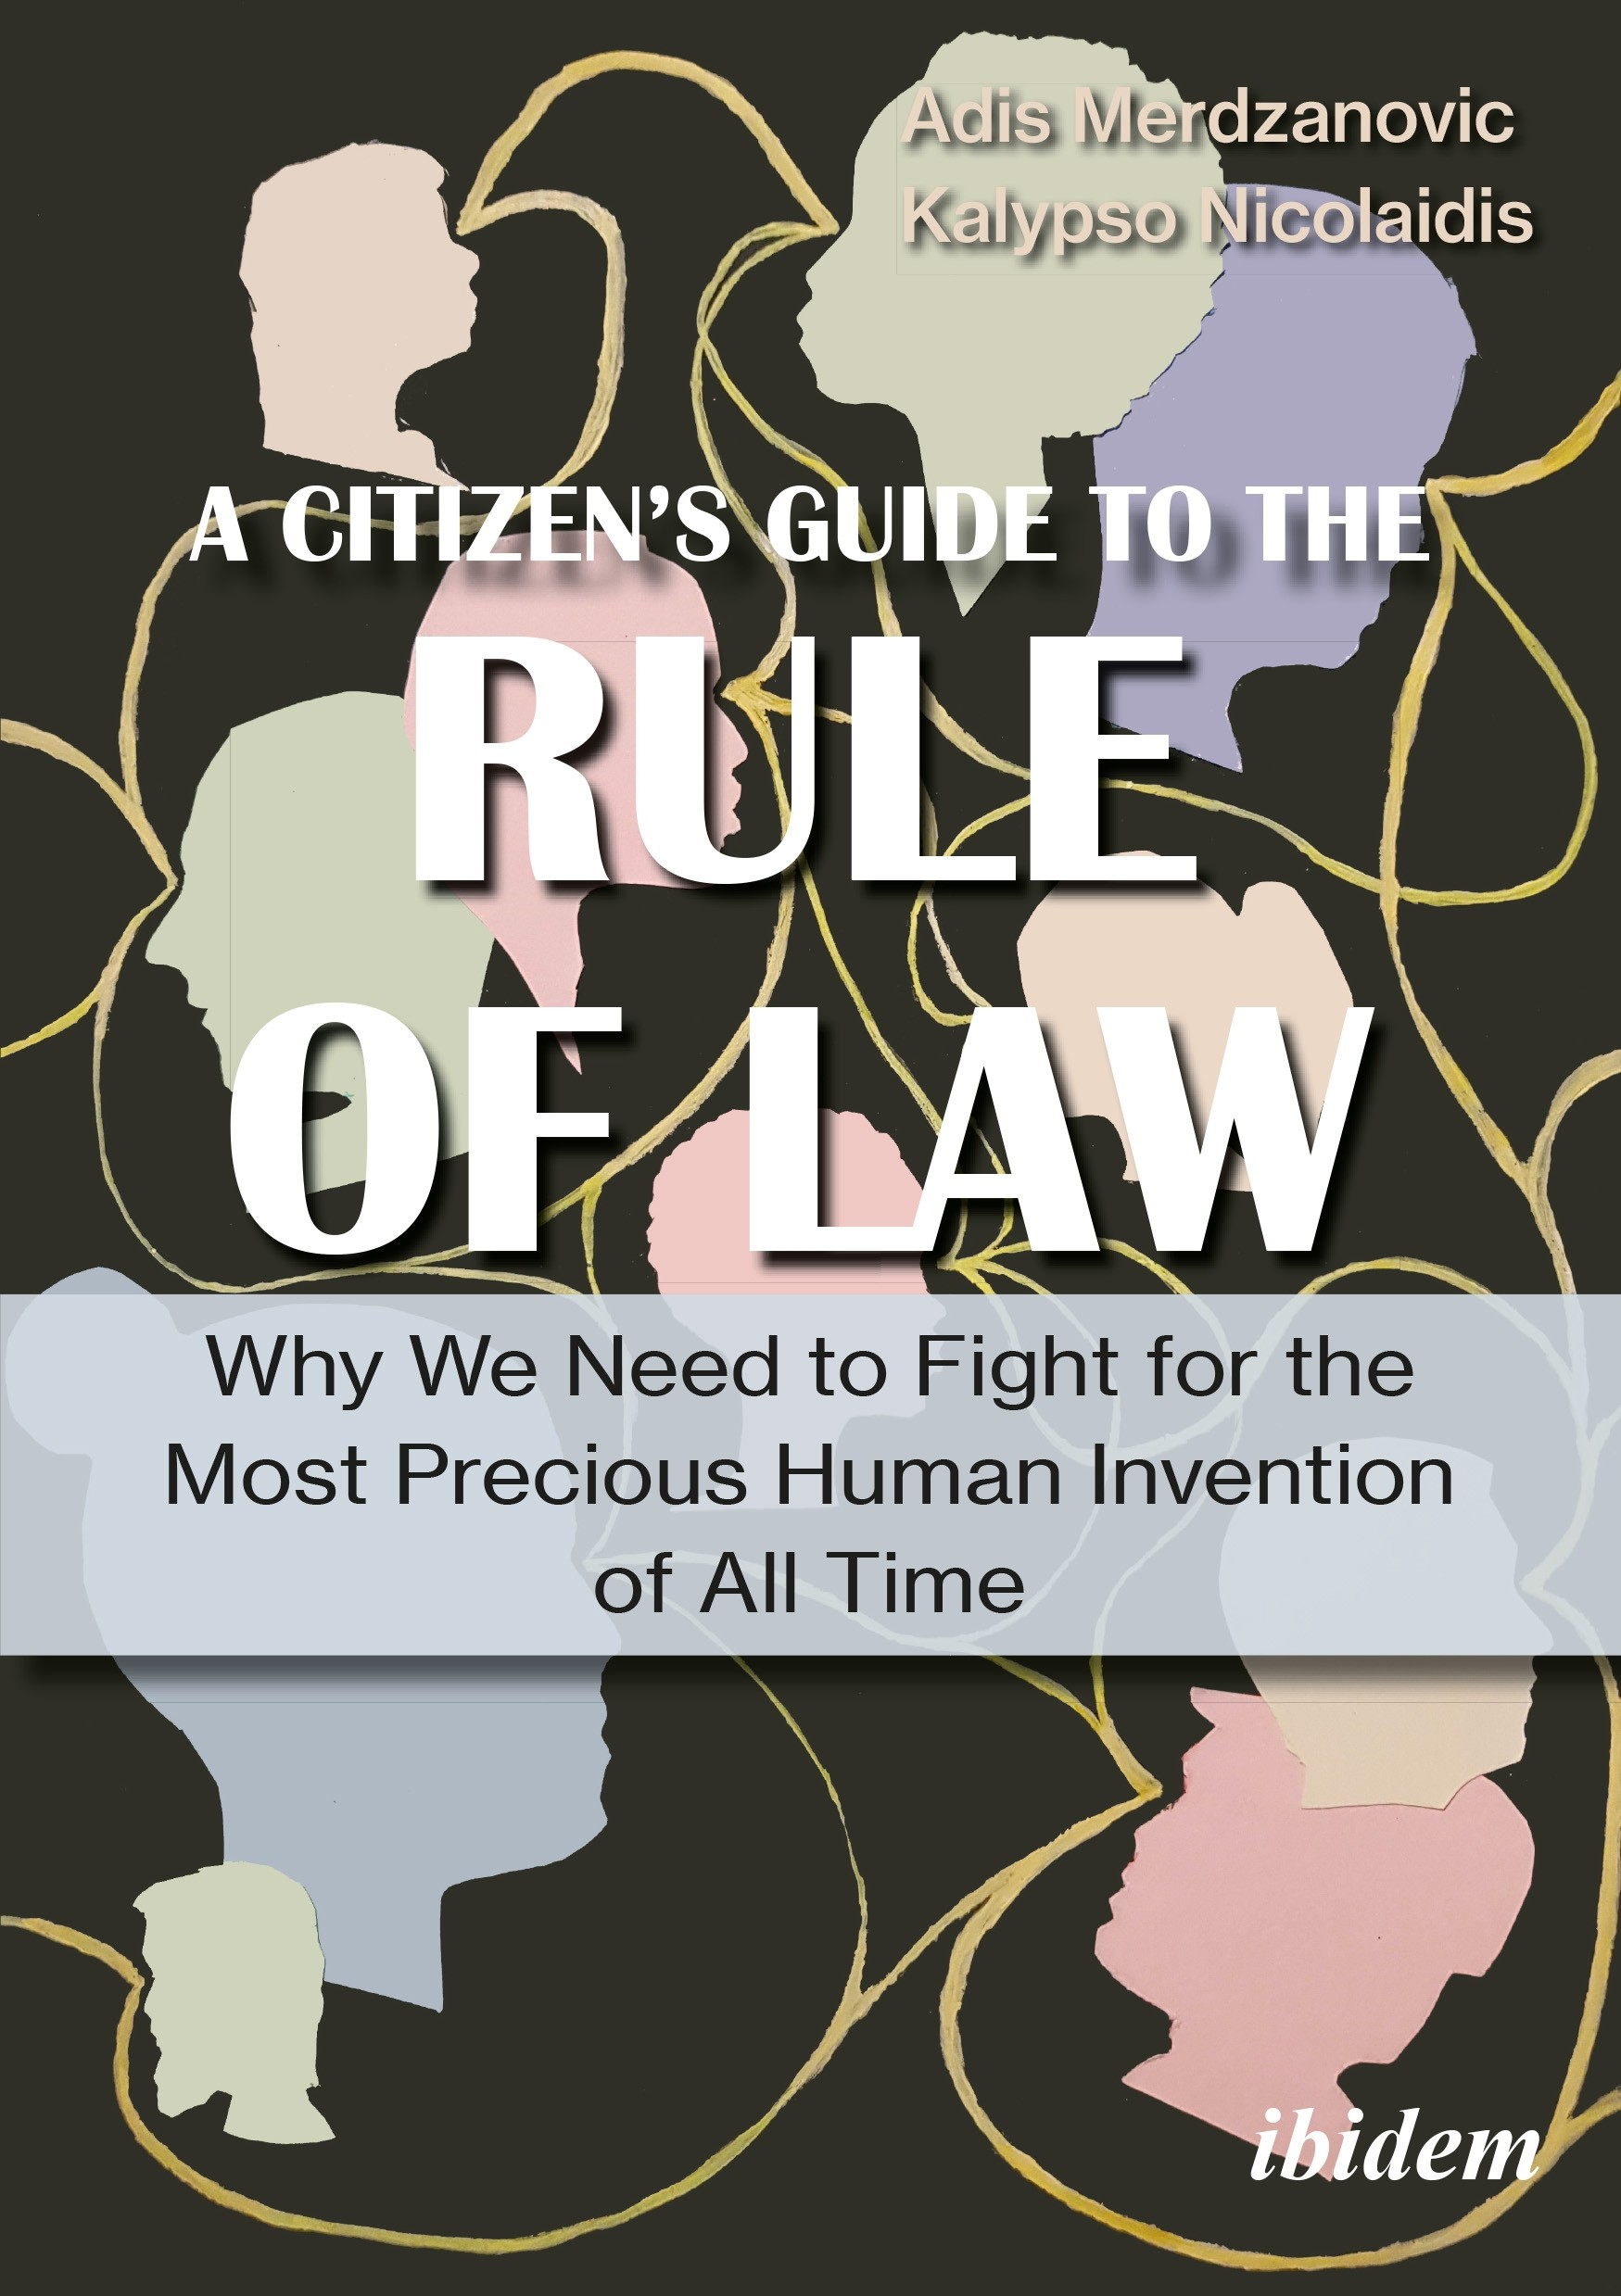 A Citizen's Guide to the Rule of Law